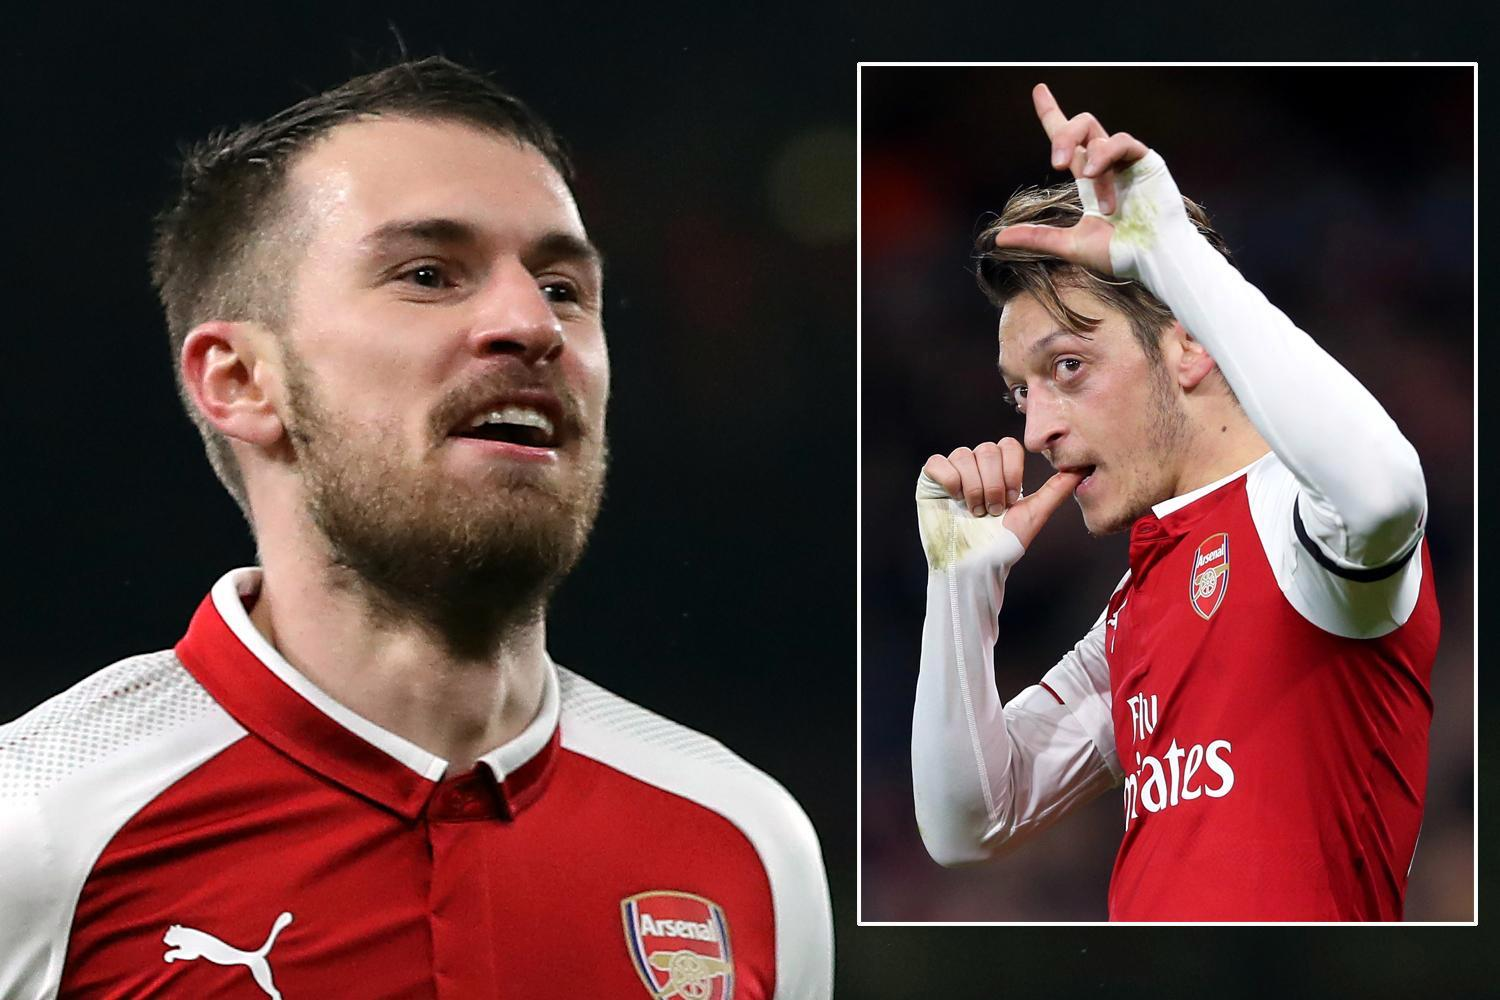 Arsenal face tough talks with Aaron Ramsey over new contract after Mesut Ozil's new £350,000-a-week deal